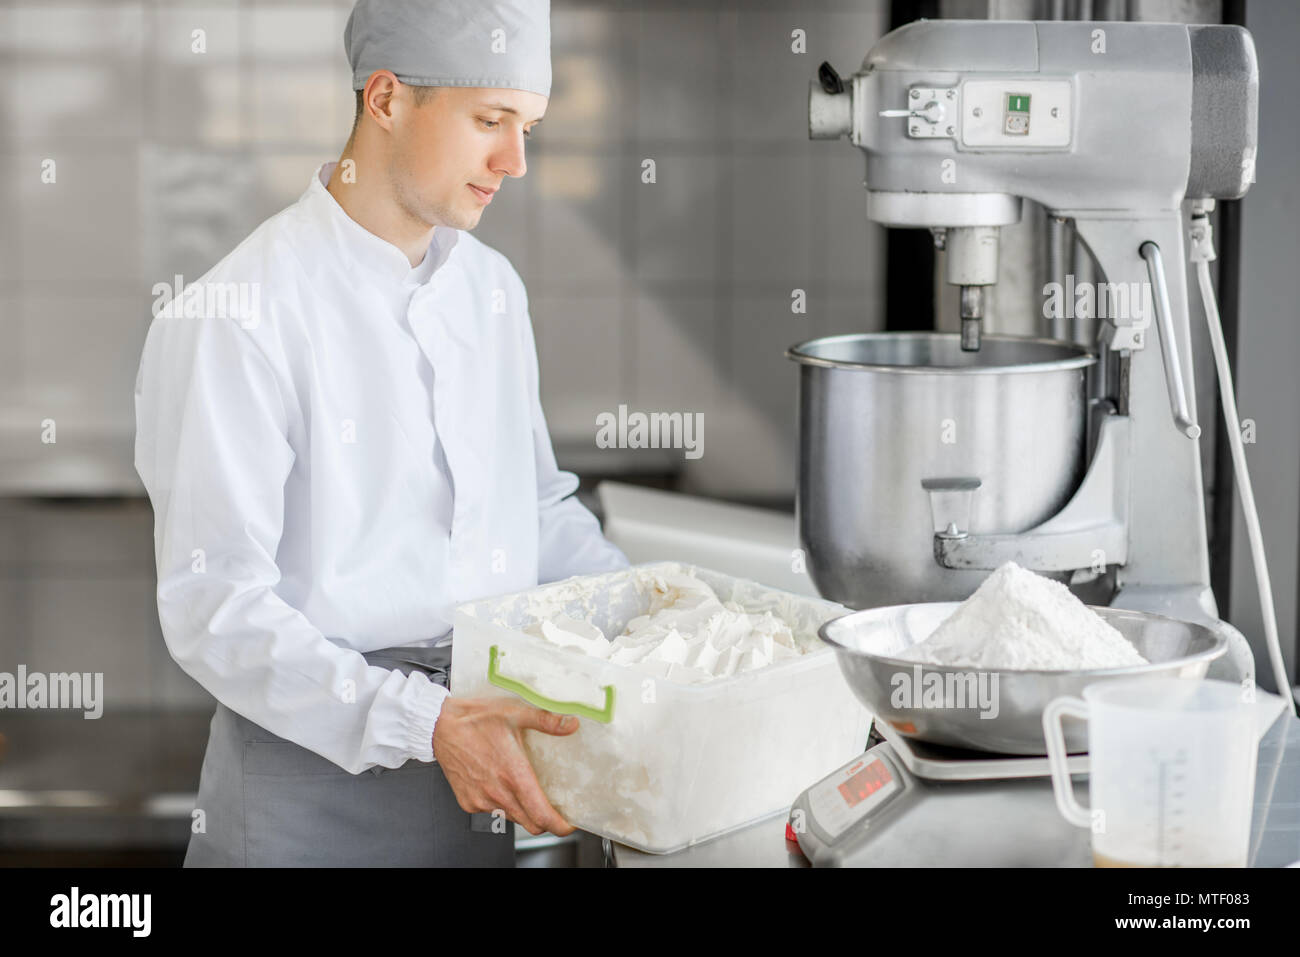 Man confectioner holding container with butter weighing ingredients for pastry at the bakery manufacturing - Stock Image